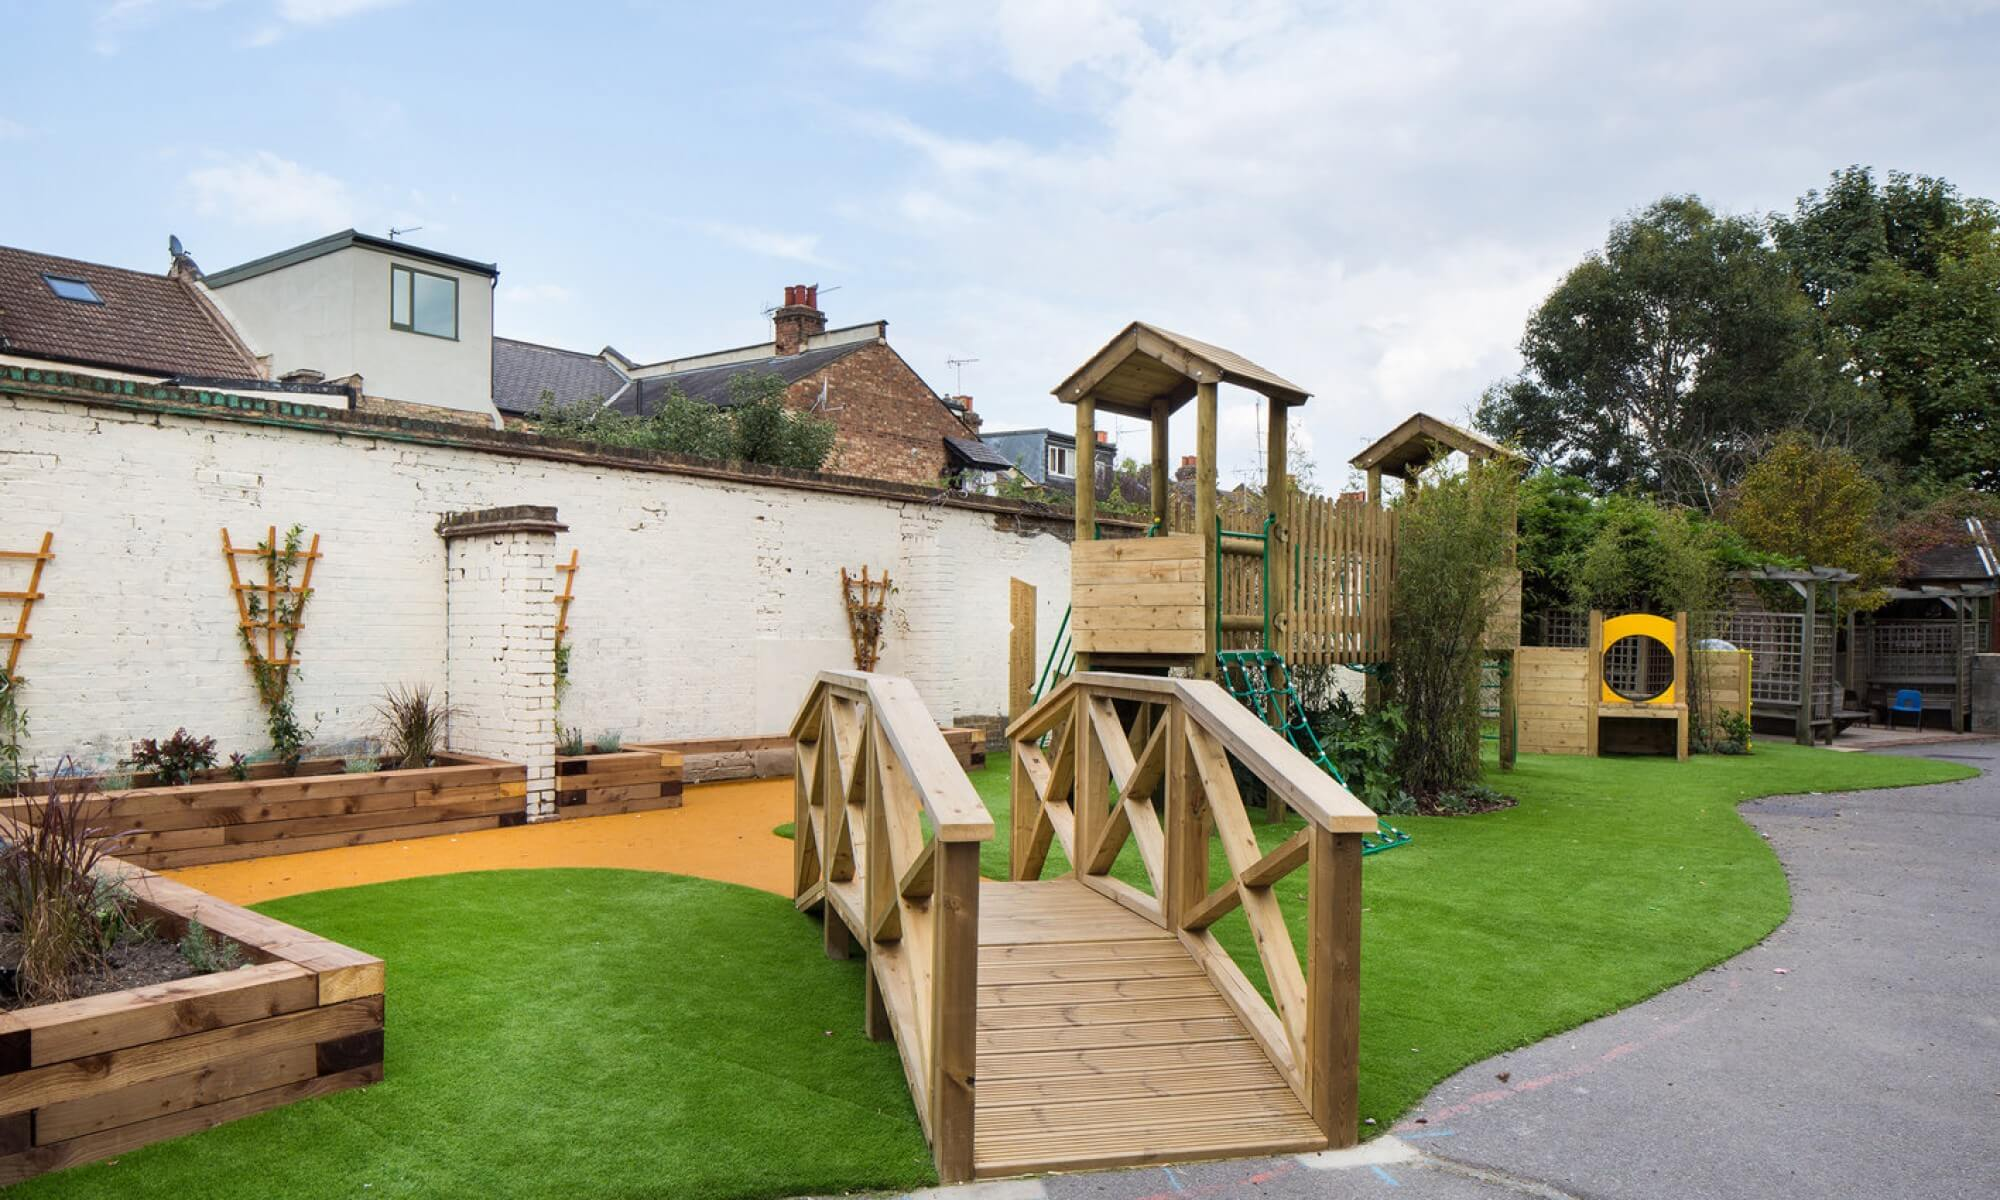 School Playground design & installation at Seven Sisters Primary School in Tottenham, London | Playcubed Playgrounds